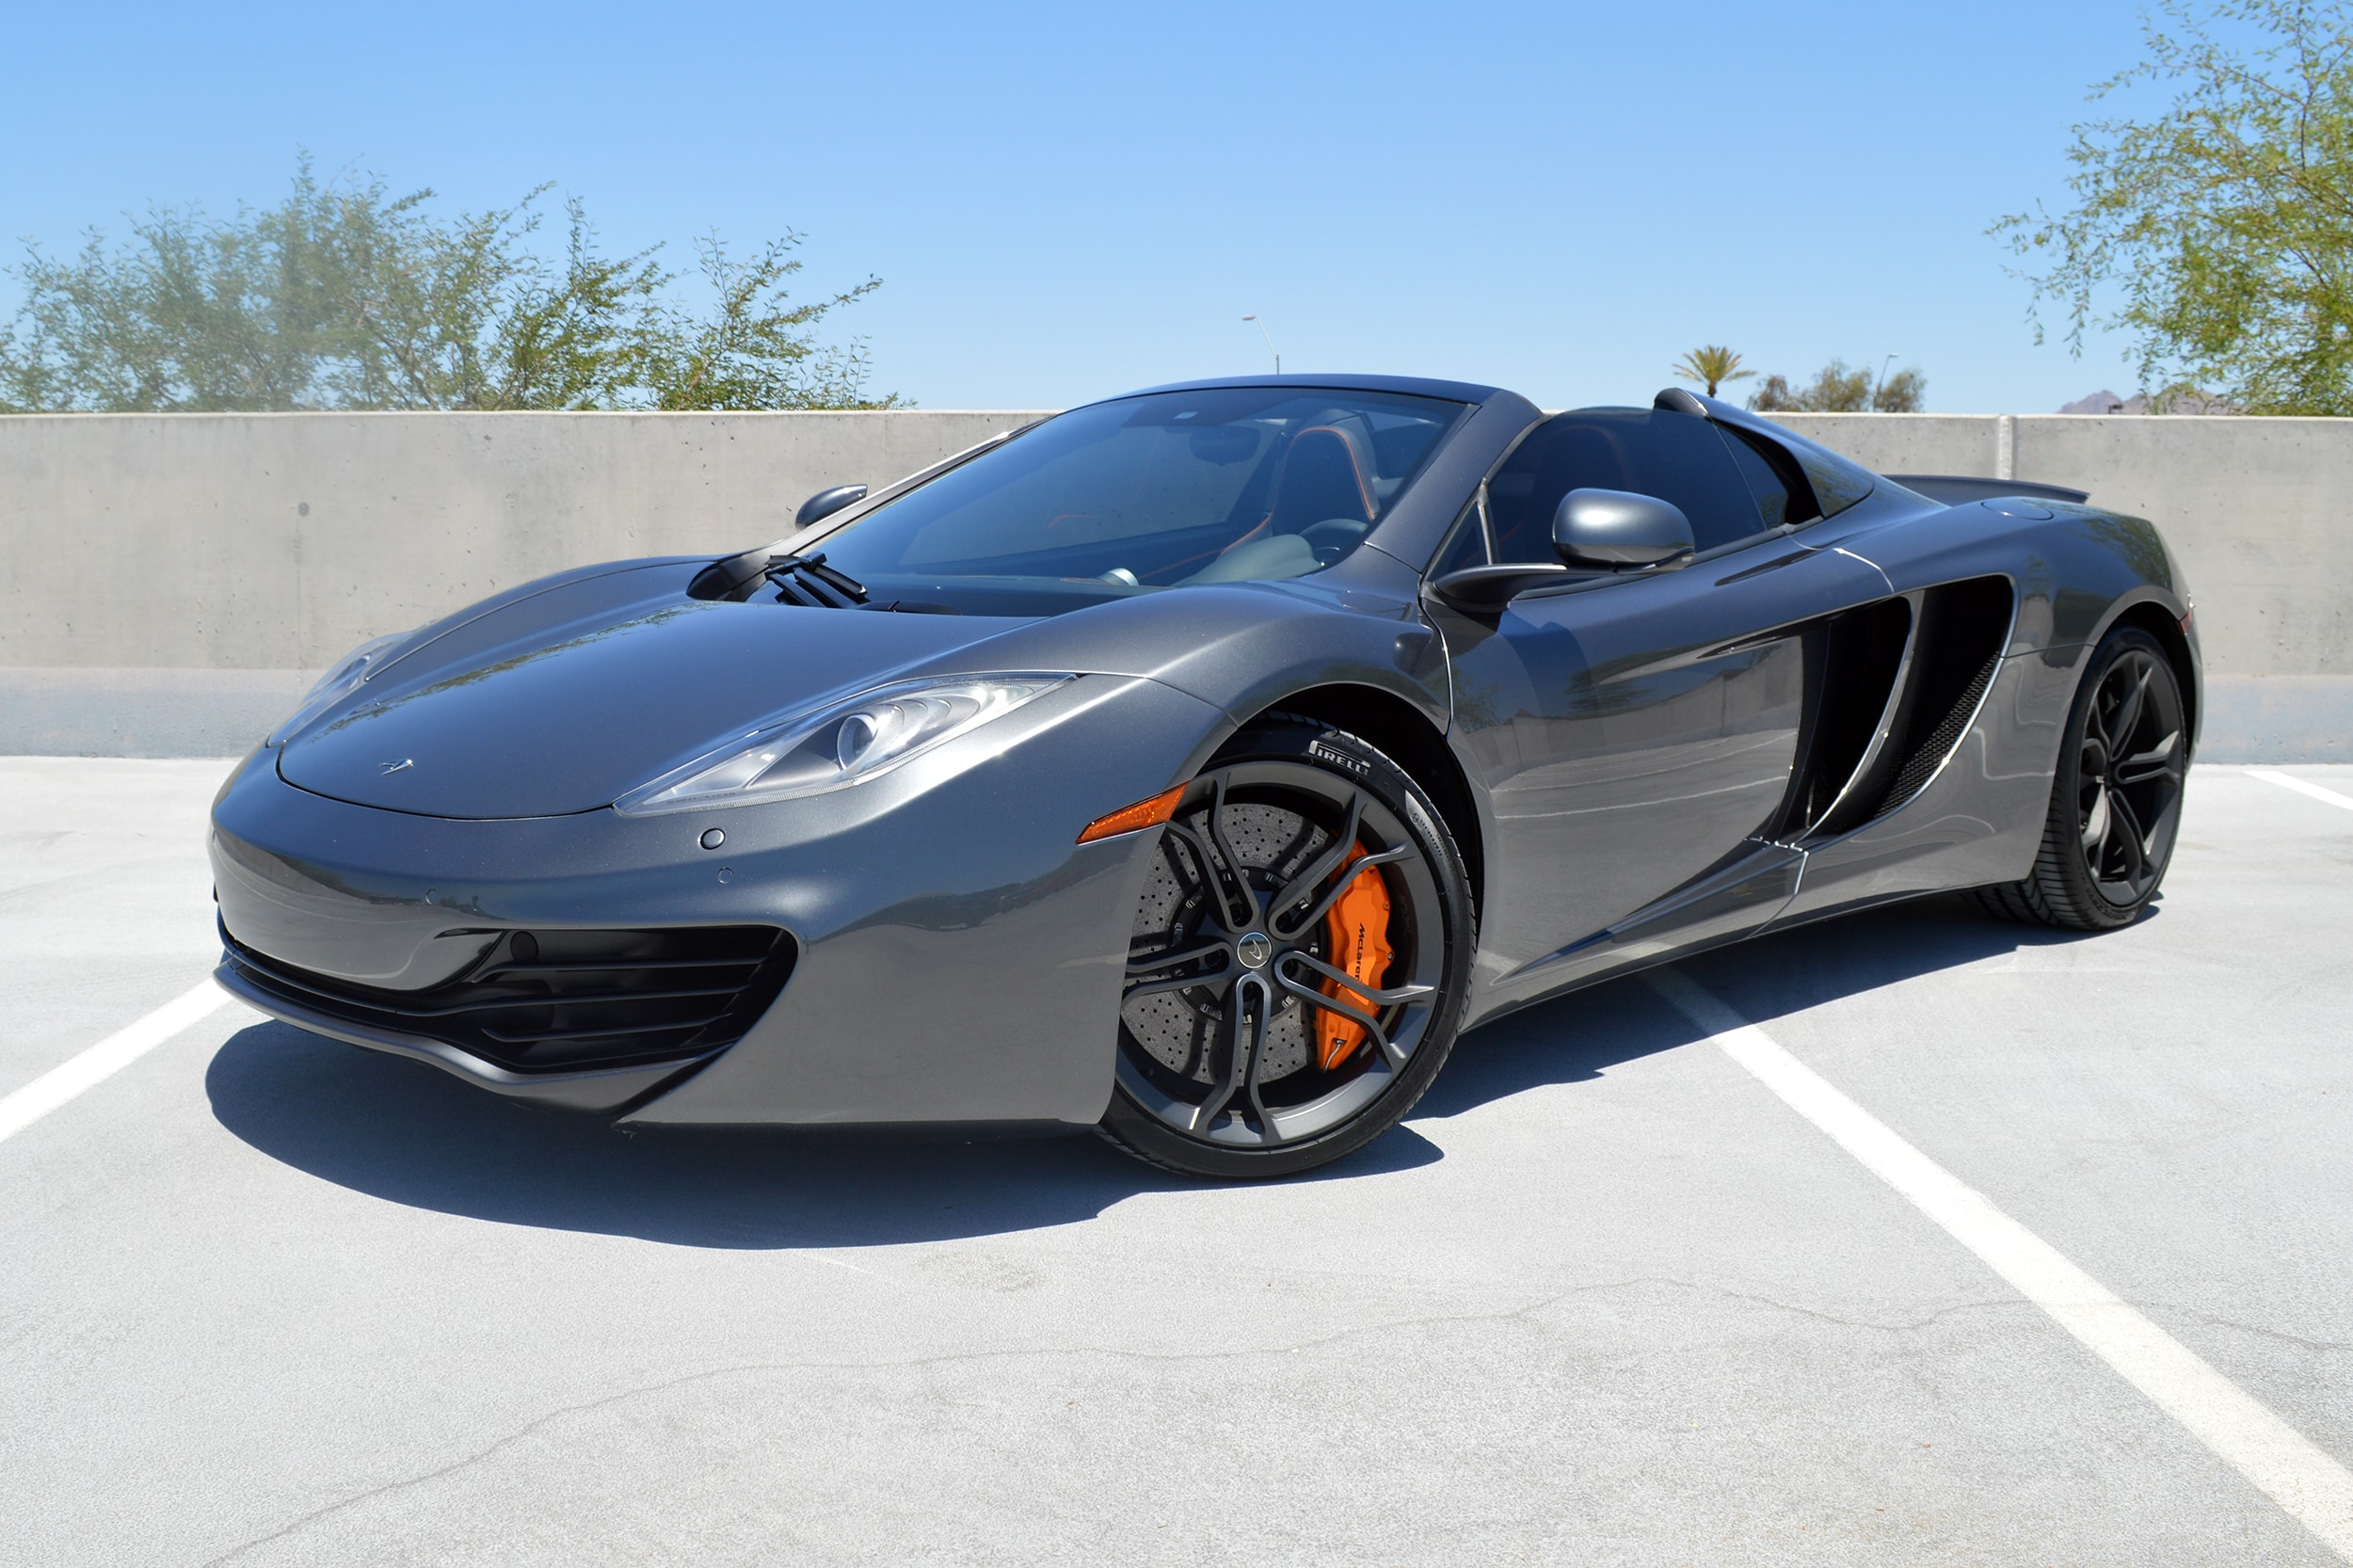 Lovely Certified Pre Owned 2014 McLaren MP4 12C Spider Convertible For Sale  Scottsdale, AZ